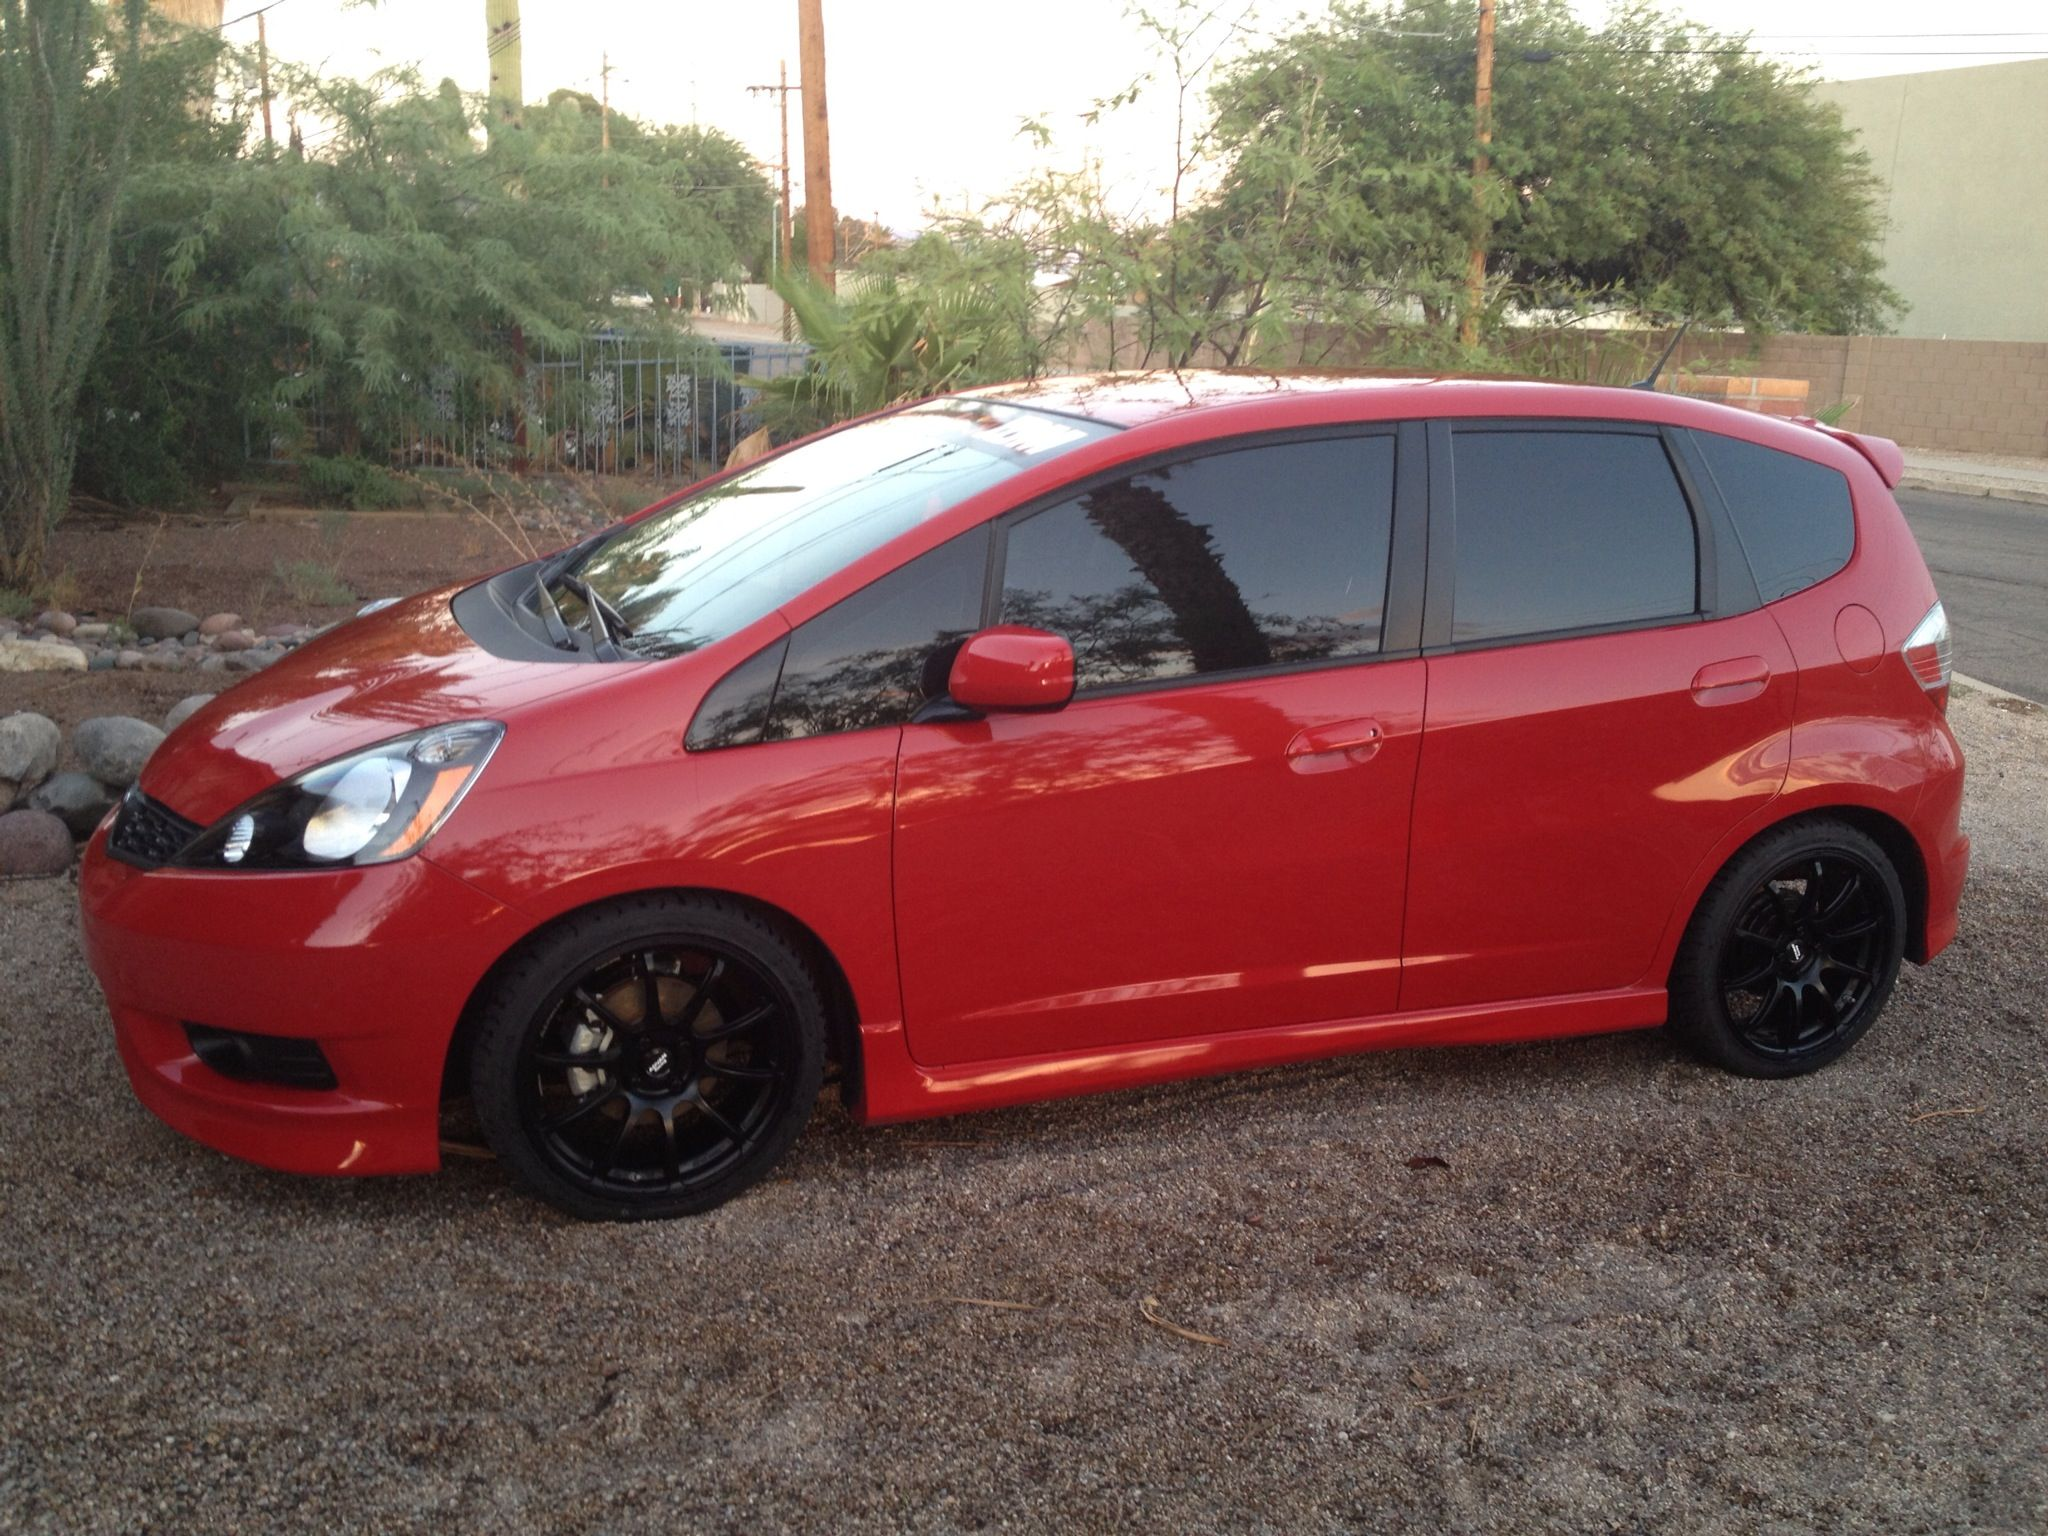 2013 honda fit w bilstein coilovers and 17 advan rsii wheels http